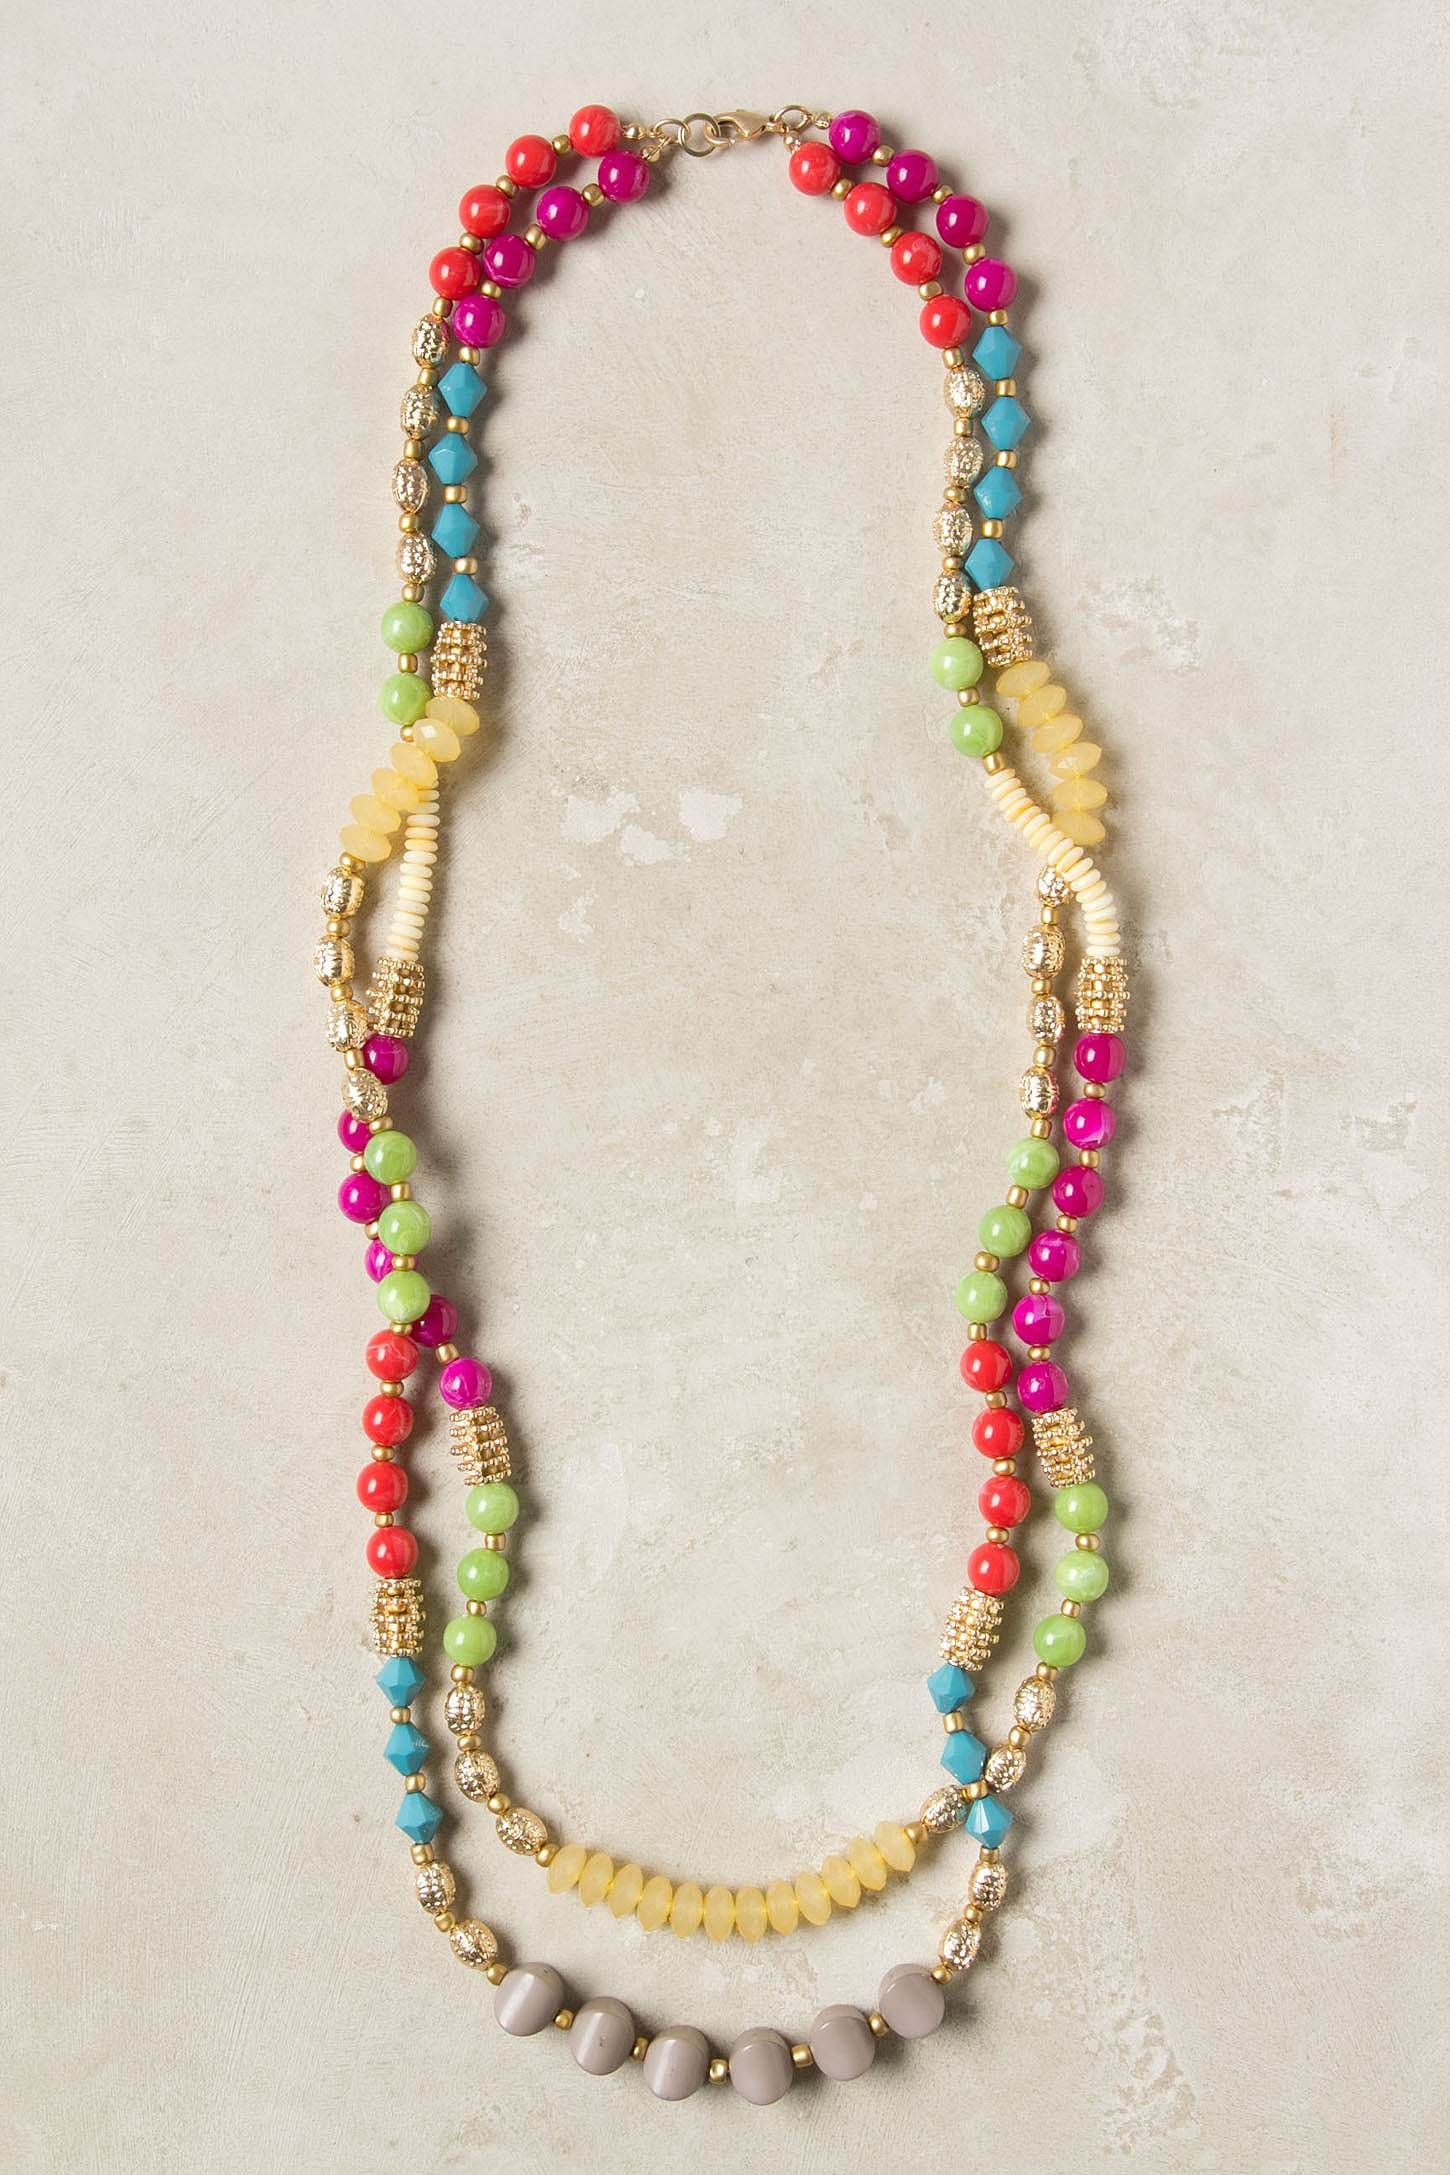 f6c7e5fe29c11f Mixed Spectra Necklace - Anthropologie.com | Crafty Schmafty ...